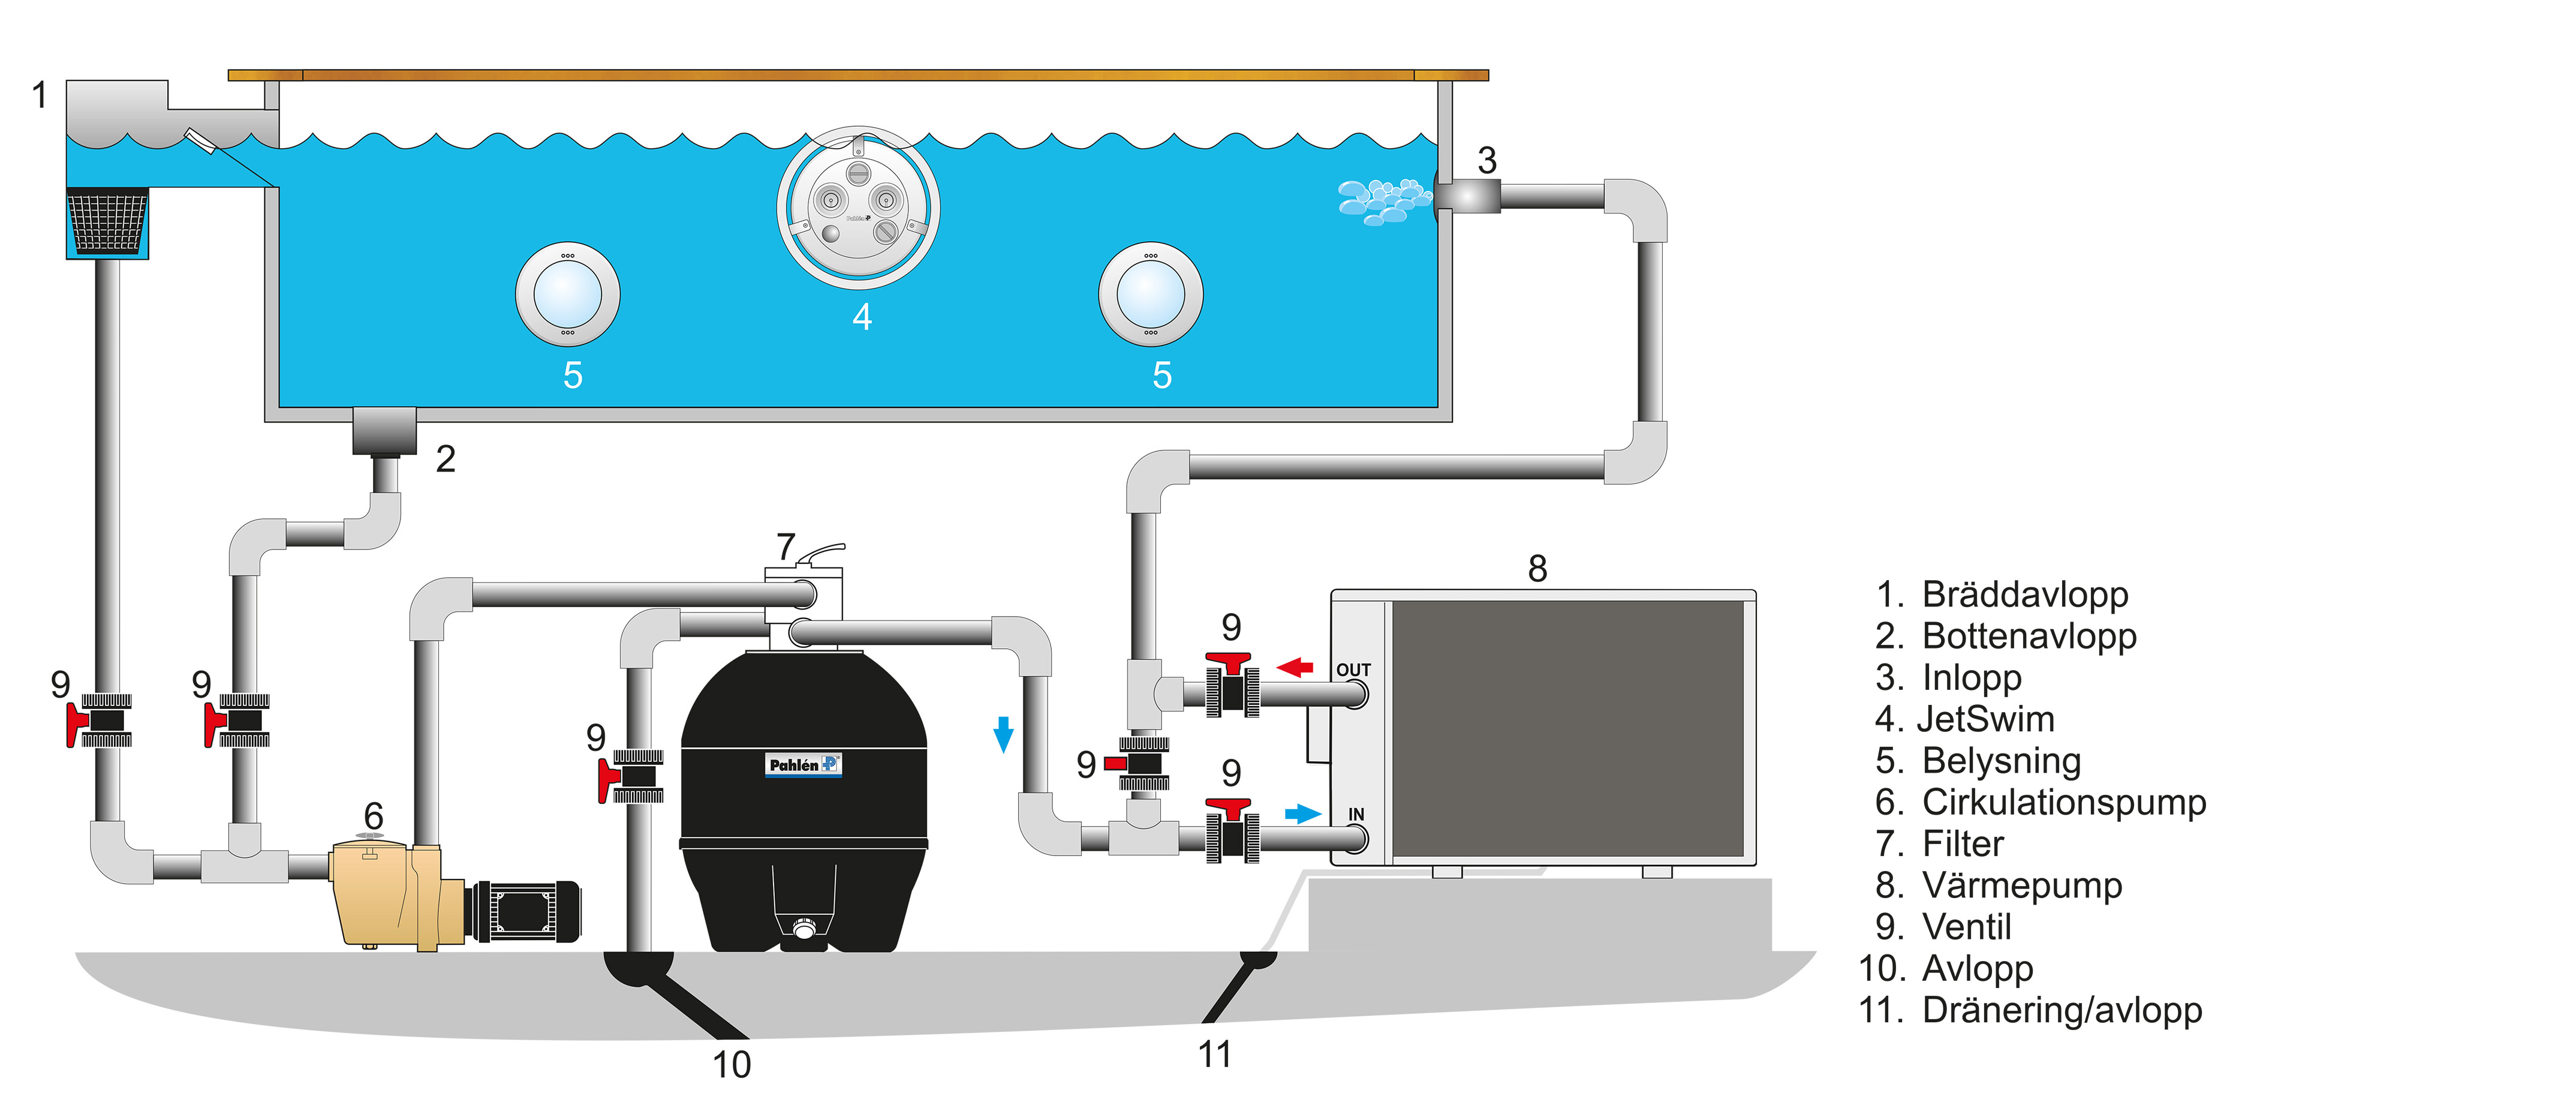 Swimming pool schematic heat exchanger electric heater heat pump for Swimming pool equipment layout